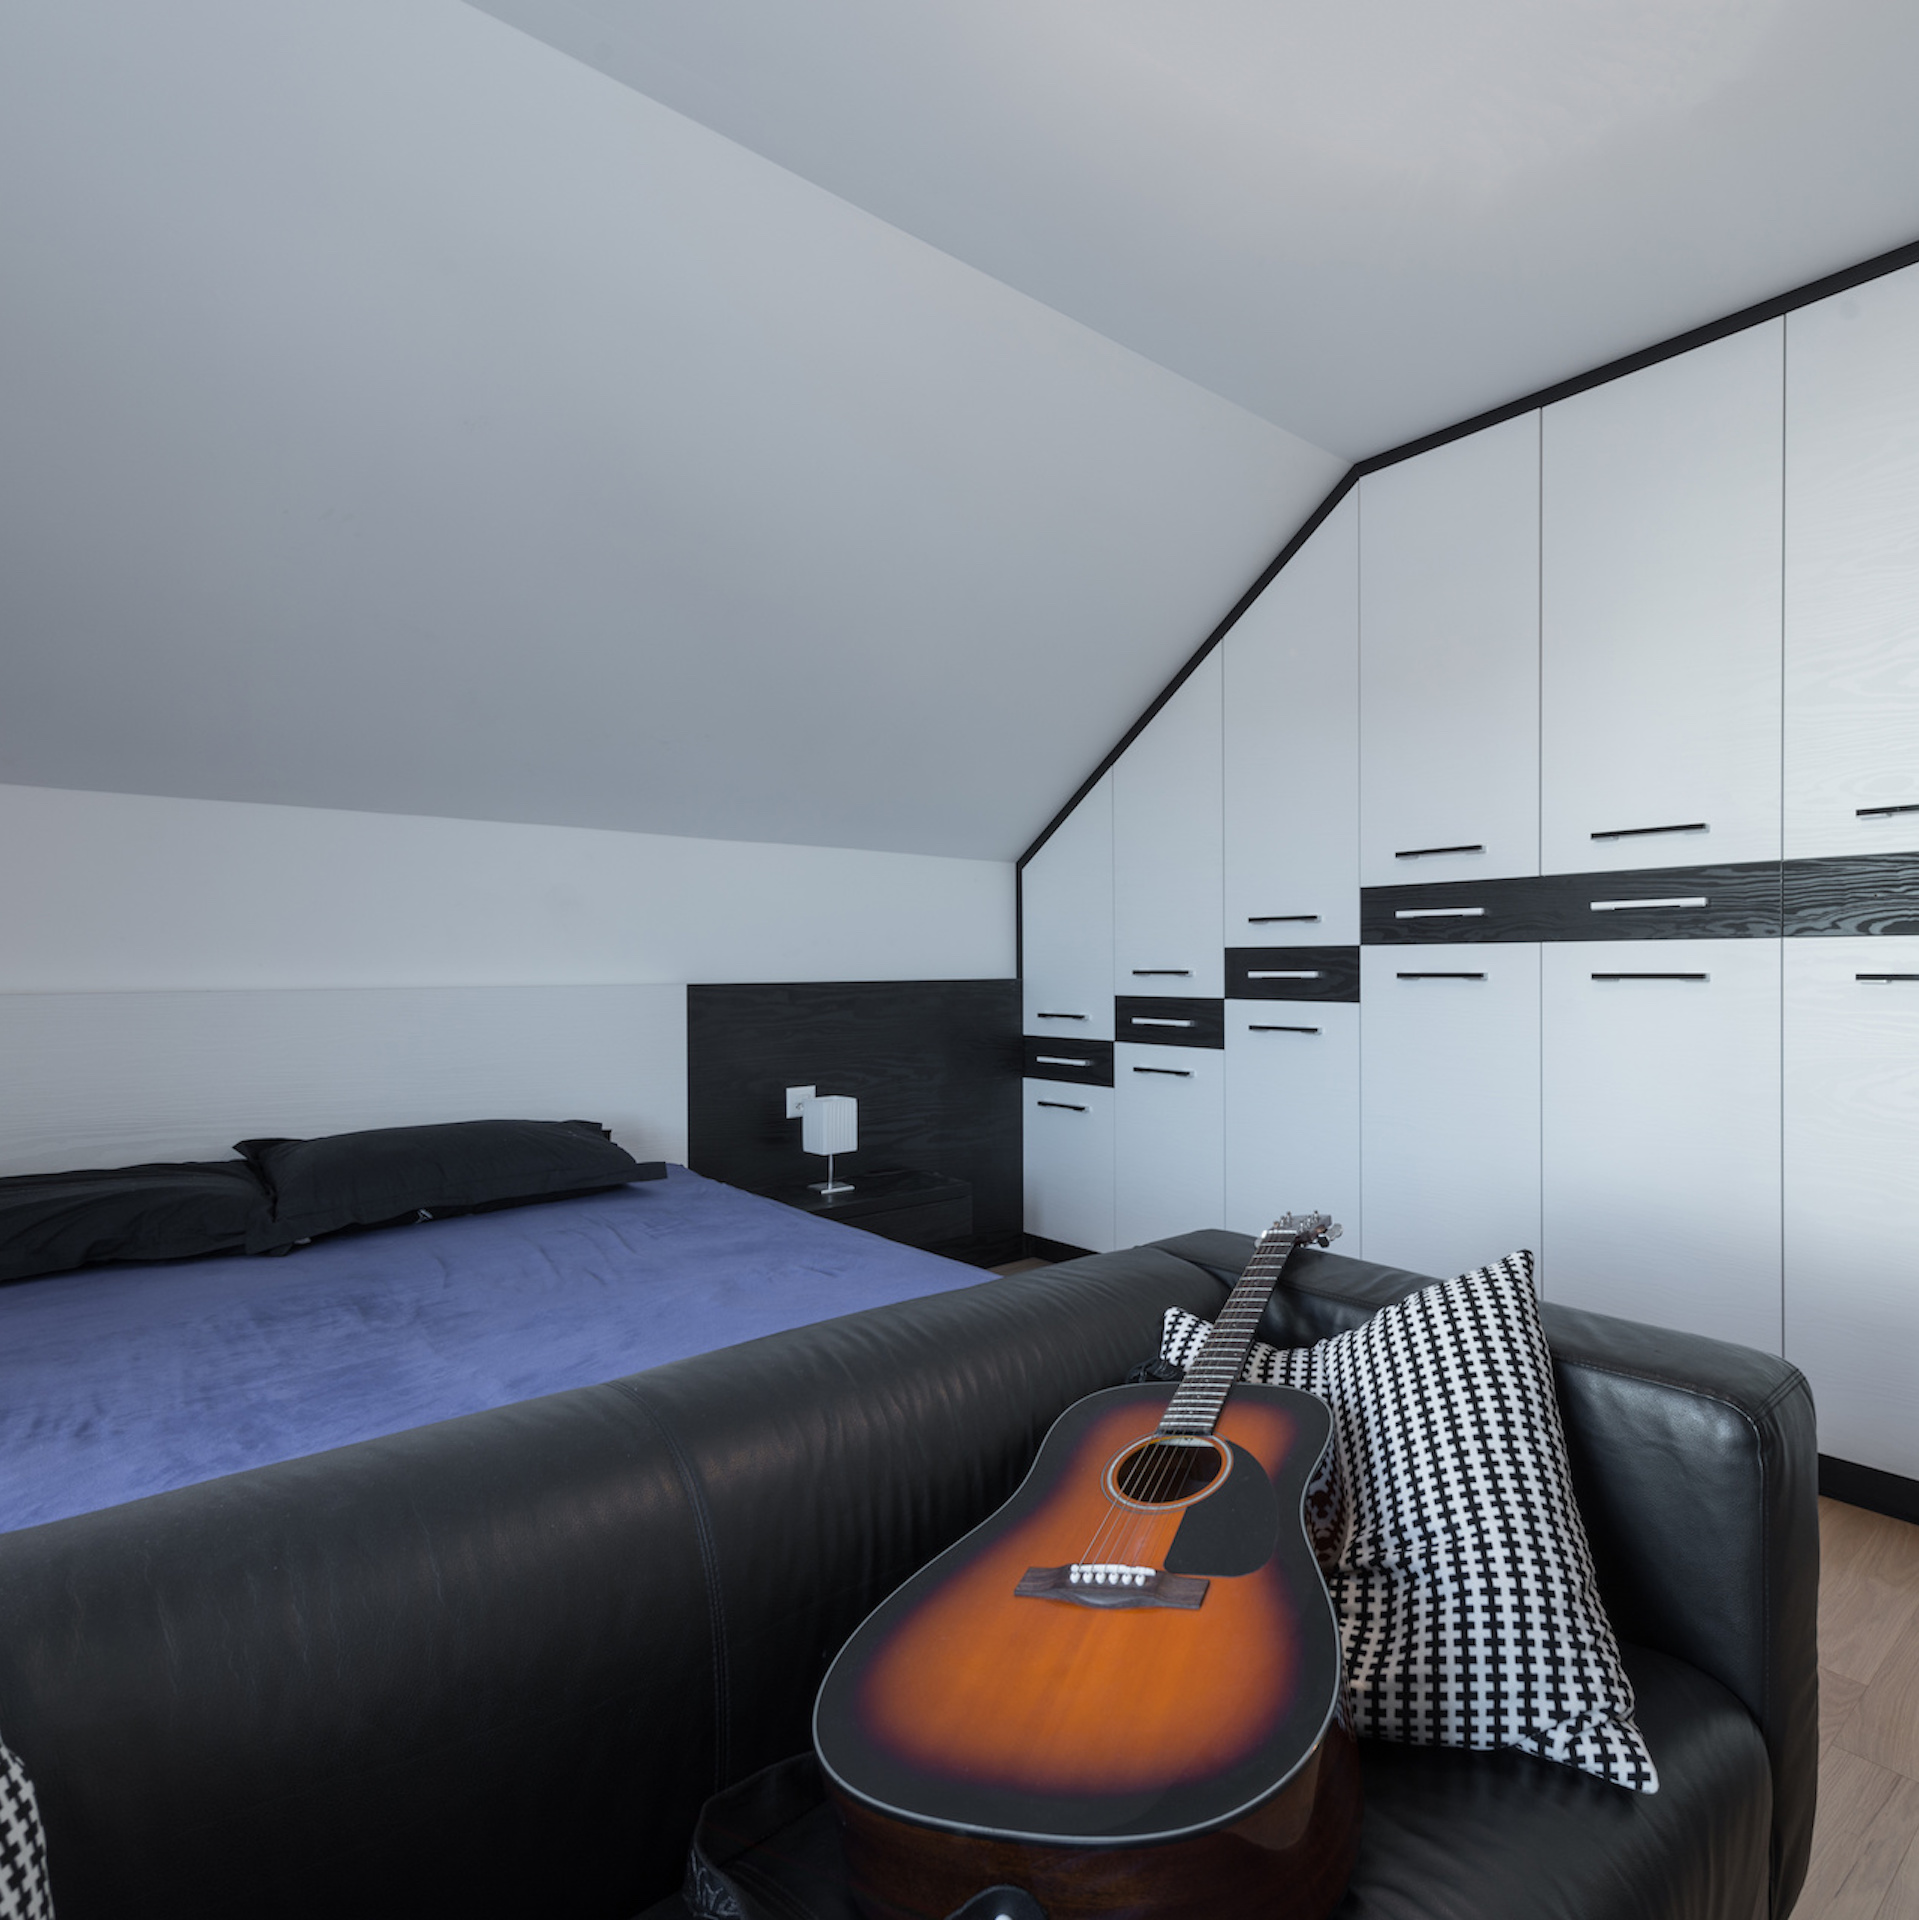 Converting an attic sky-blue-lofts-south-wales-loft-conversion-company-cardiff-attic-modification-penarth-barry-lisvane-fairwater-ely-roath-canton-caerphilly-bridgend-valleys-Master bedroom and dresser in attic interior